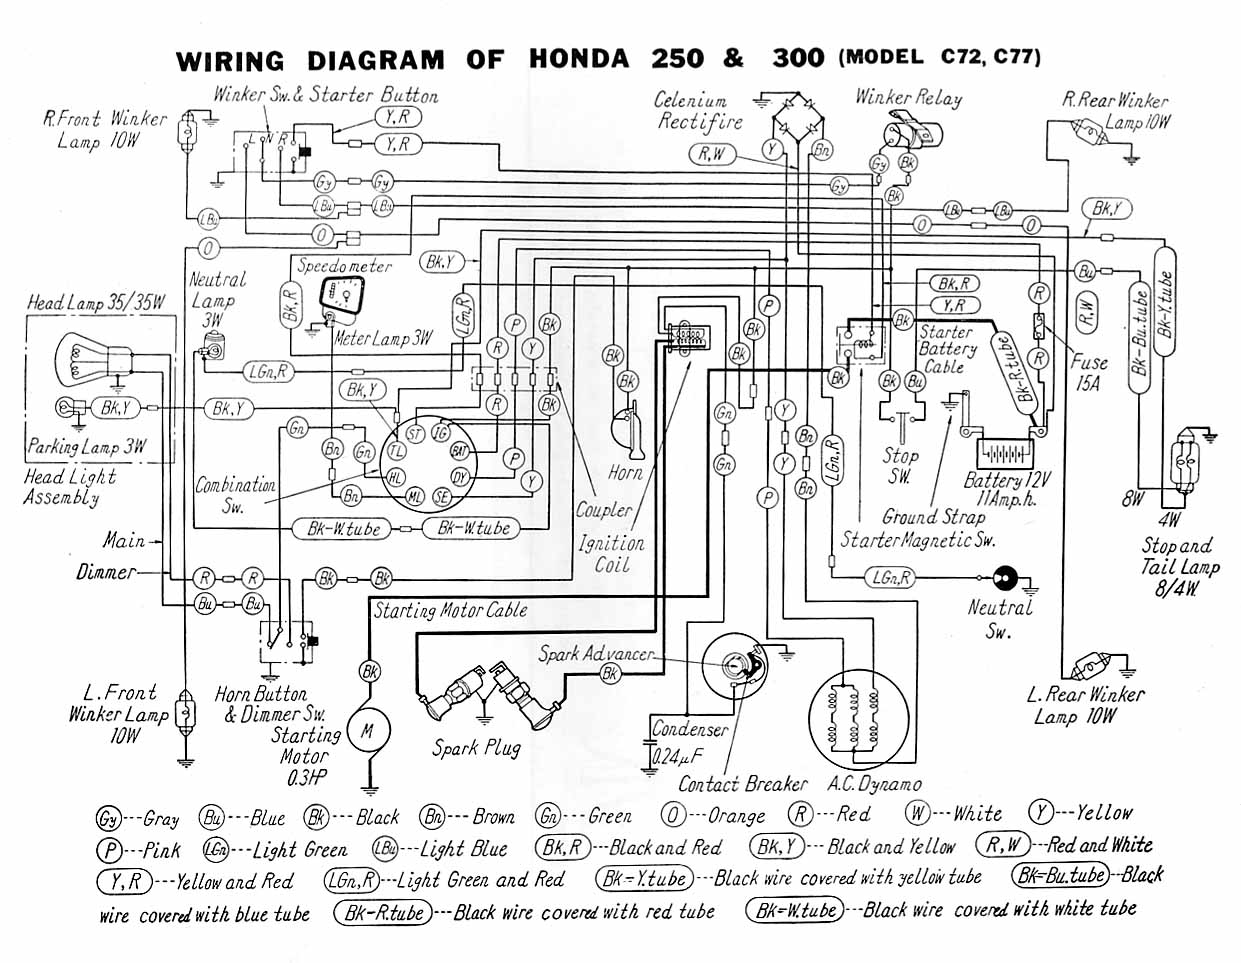 Honda Unicorn Wiring Diagram Schematics Uniden Nmea Cable Diagrams 1980 Ct70